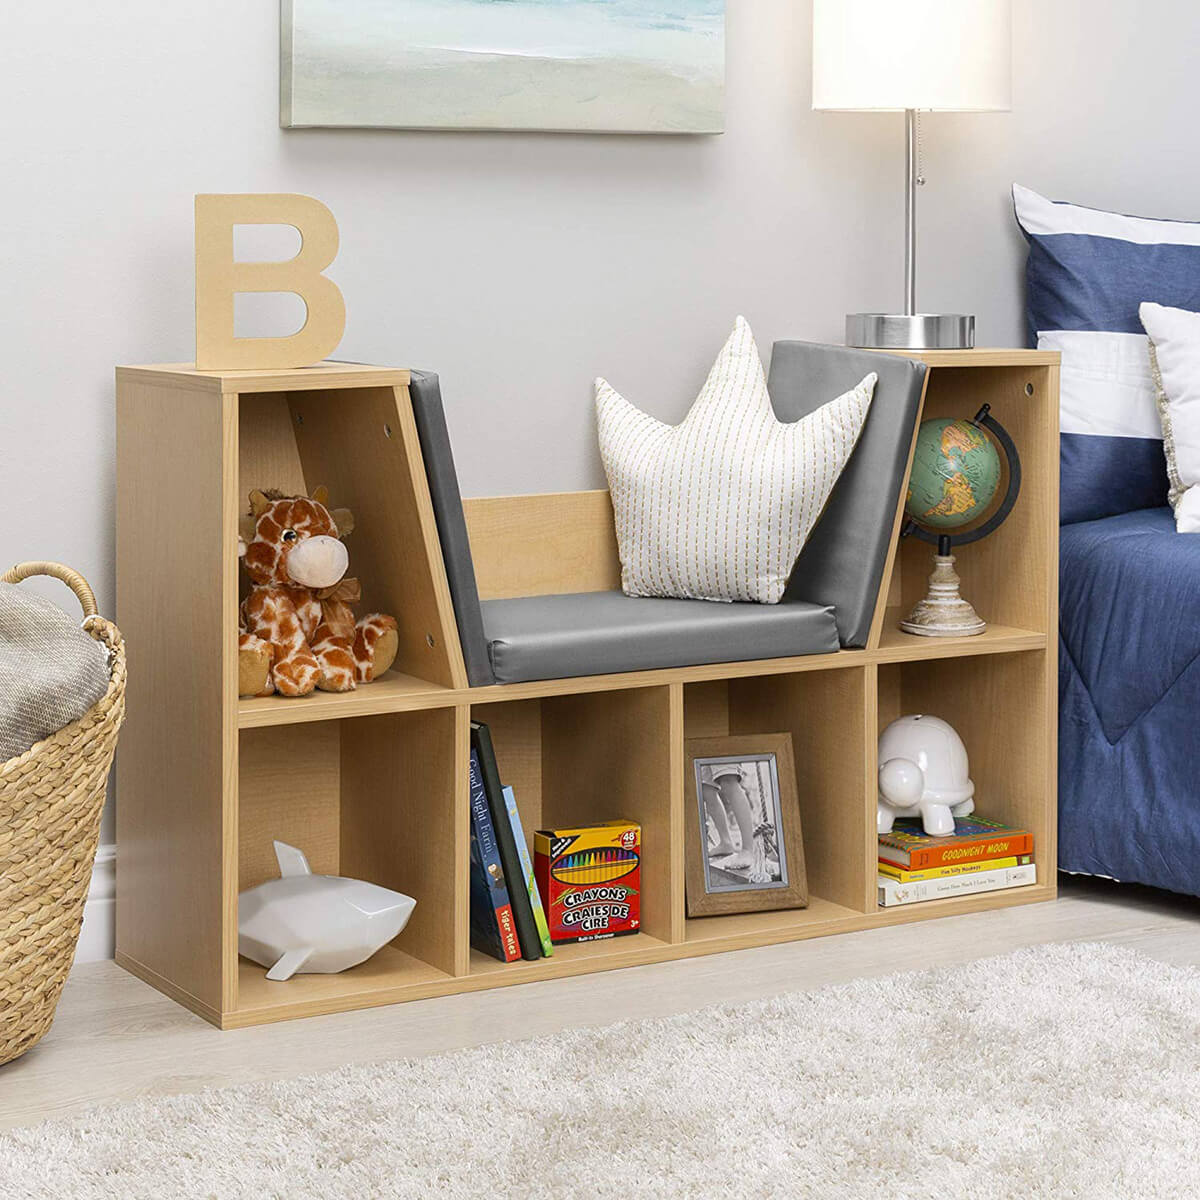 30 Best Toy Storage Ideas And Designs For 2019